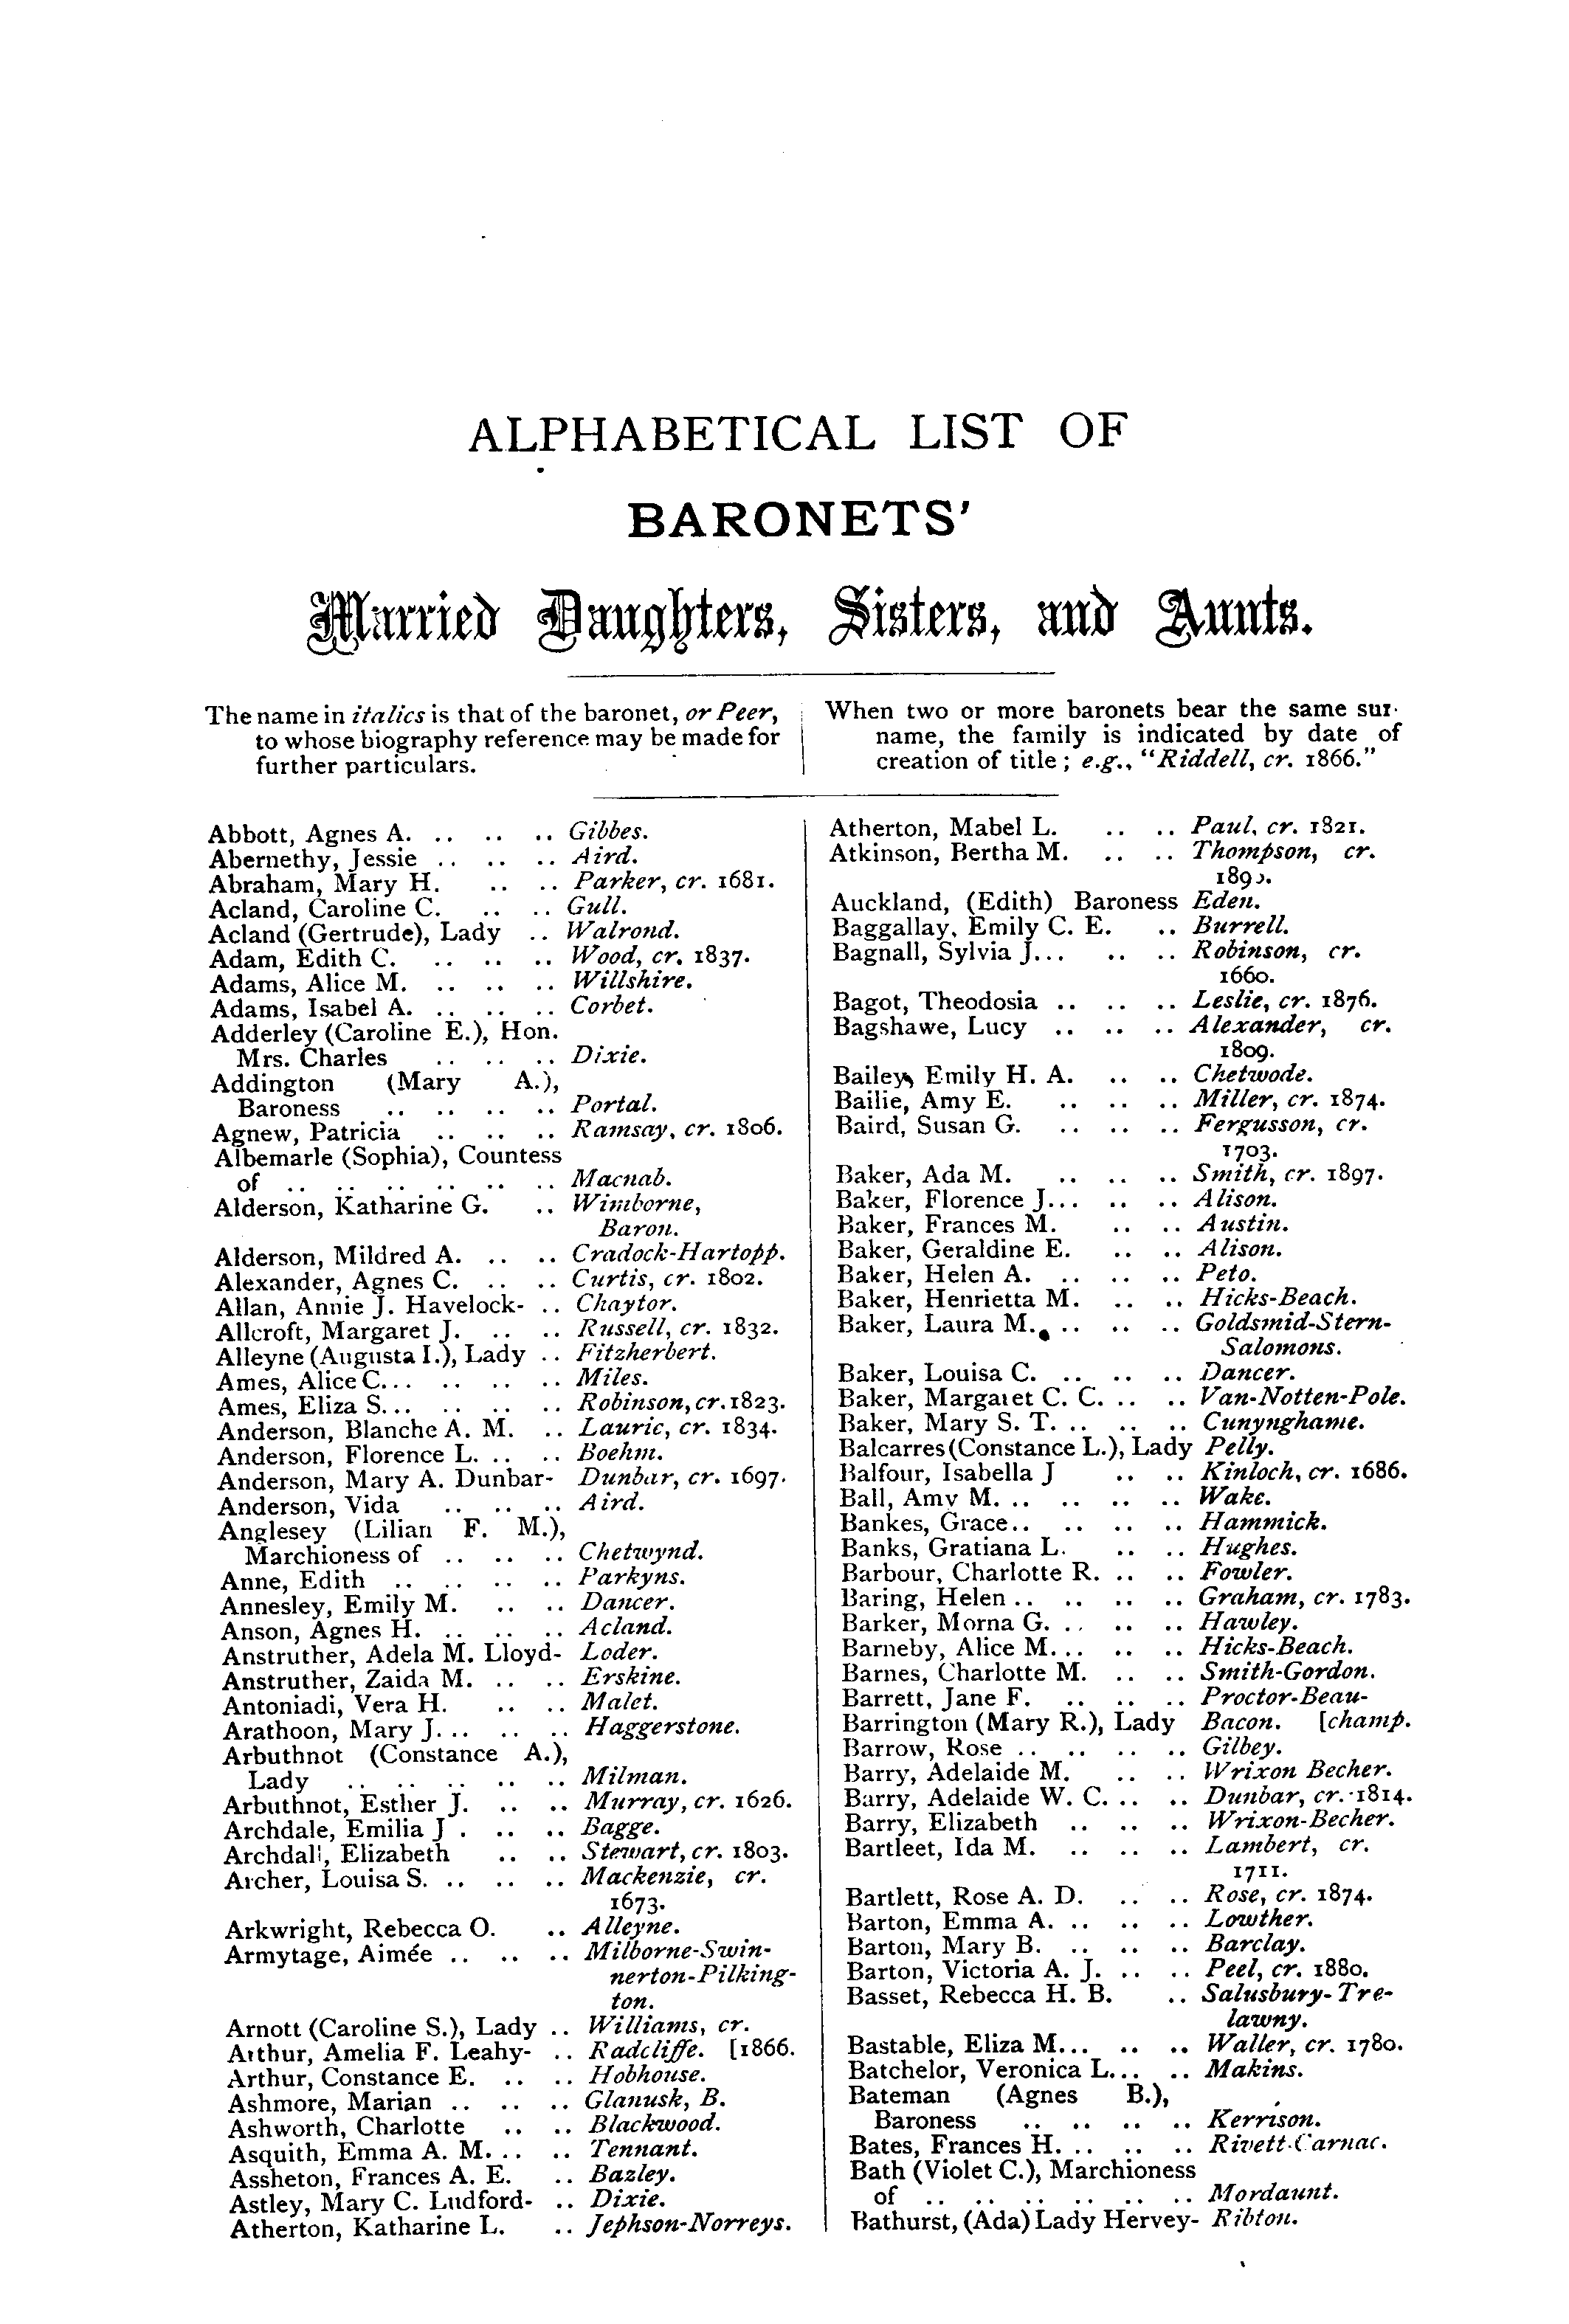 Debrett's Peerage, Baronetage, Knightage and Companionage, 1904 page 675 - click to open larger version in a new window